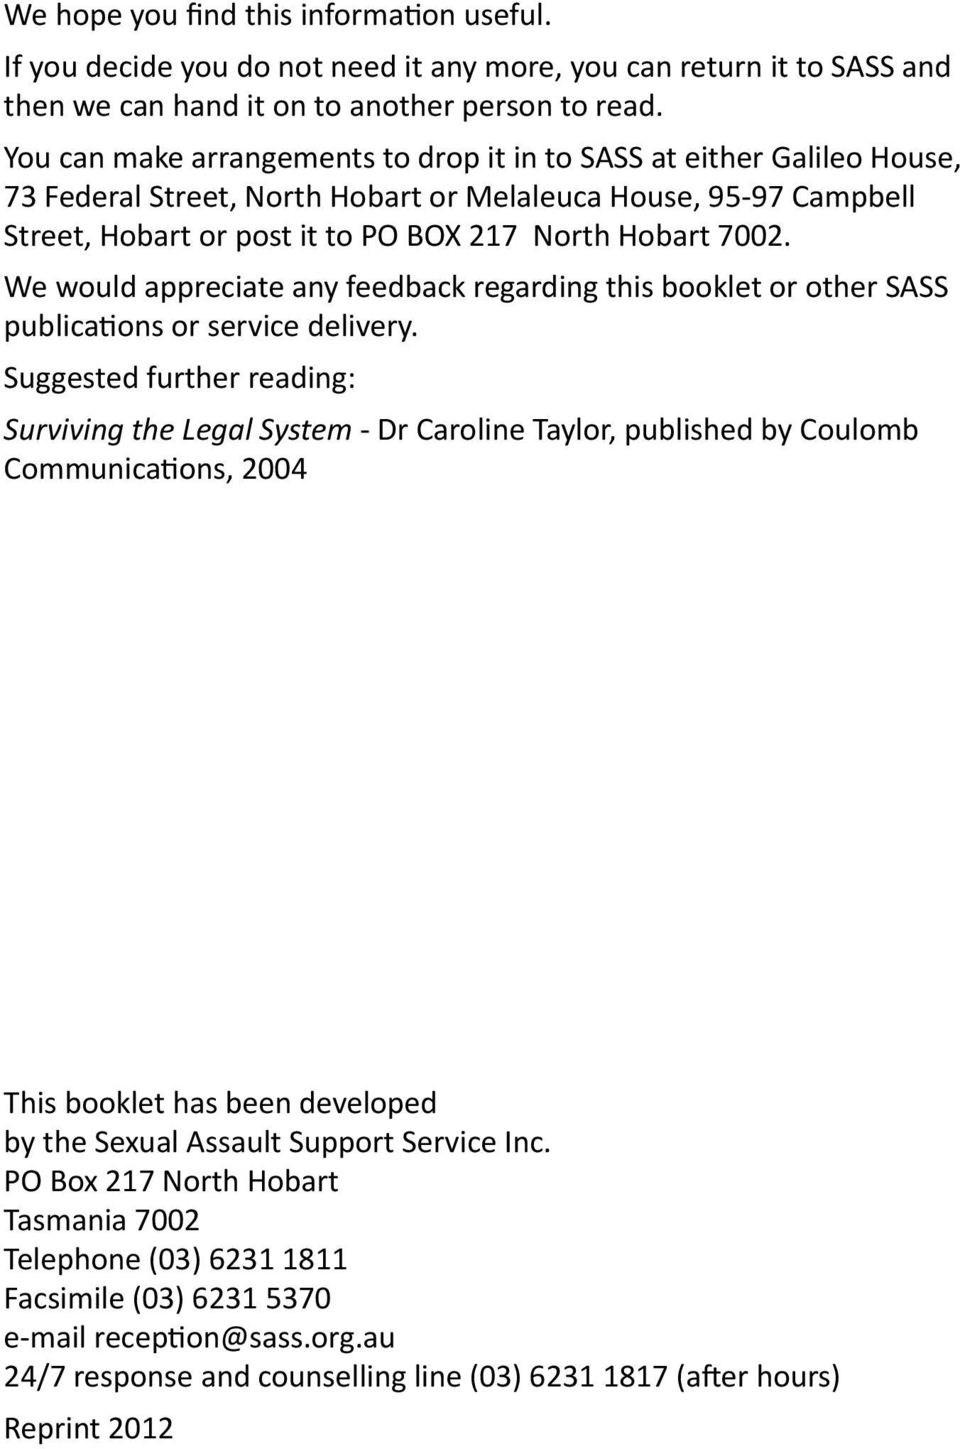 We would appreciate any feedback regarding this booklet or other SASS publications or service delivery.